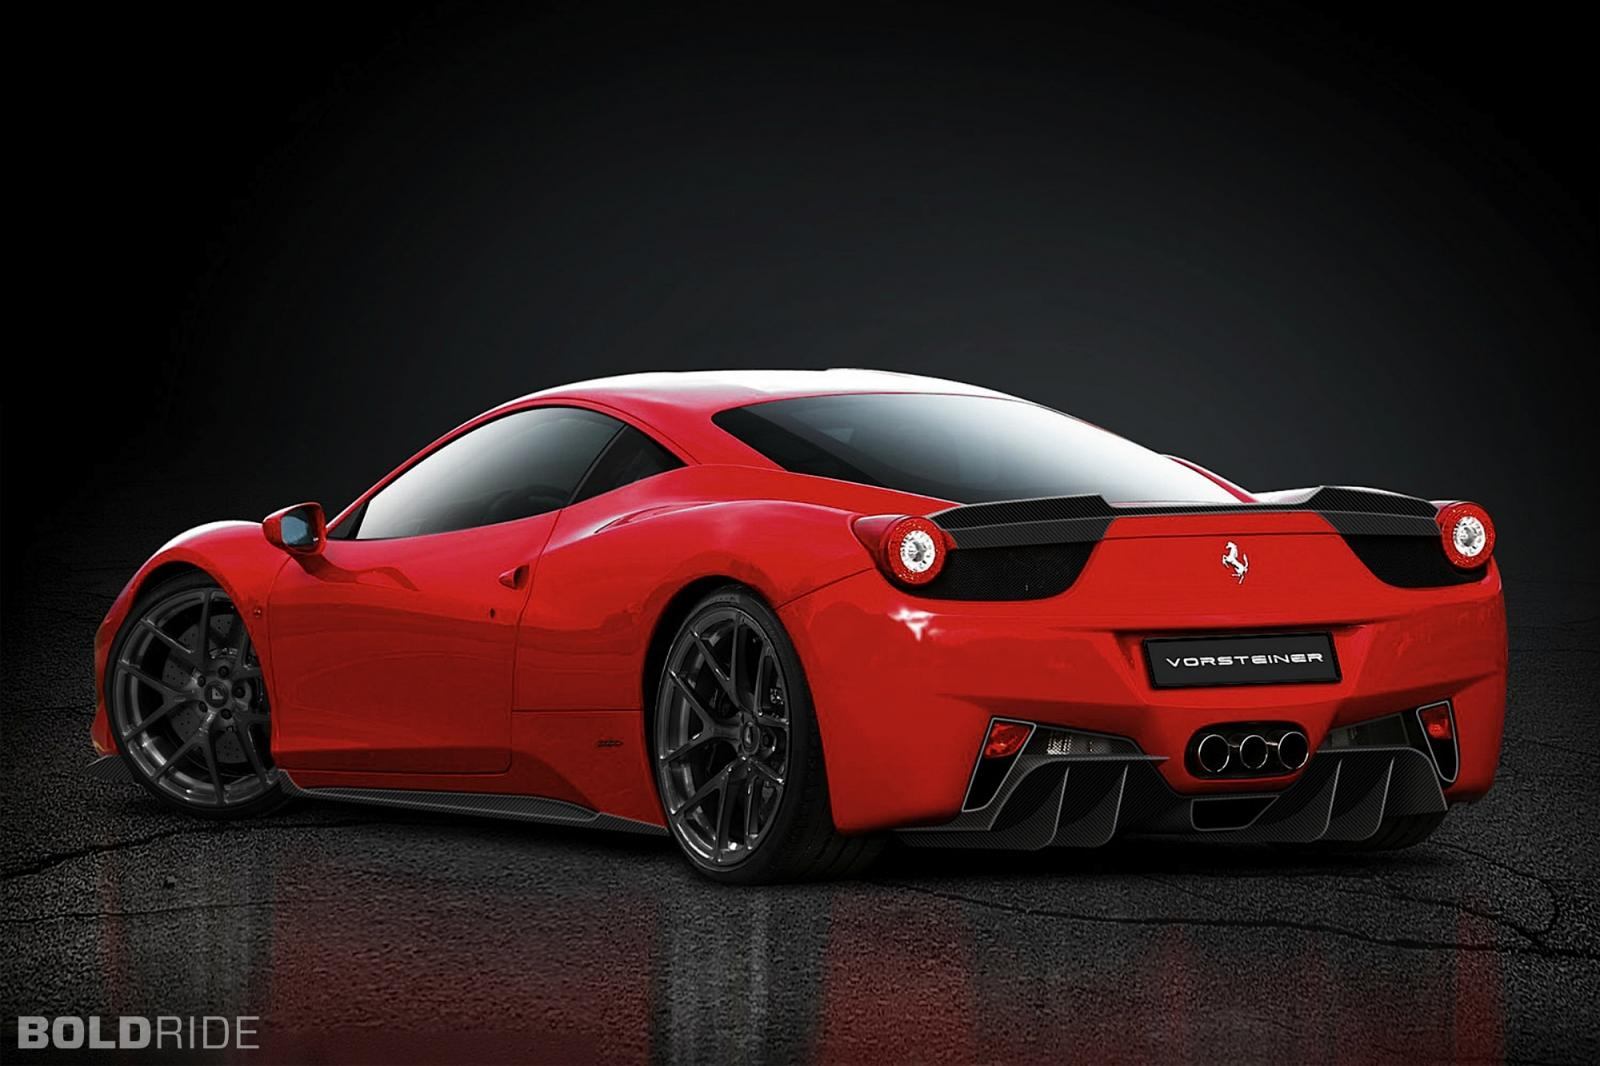 2012 ferrari 458 italia information and photos zombiedrive. Black Bedroom Furniture Sets. Home Design Ideas